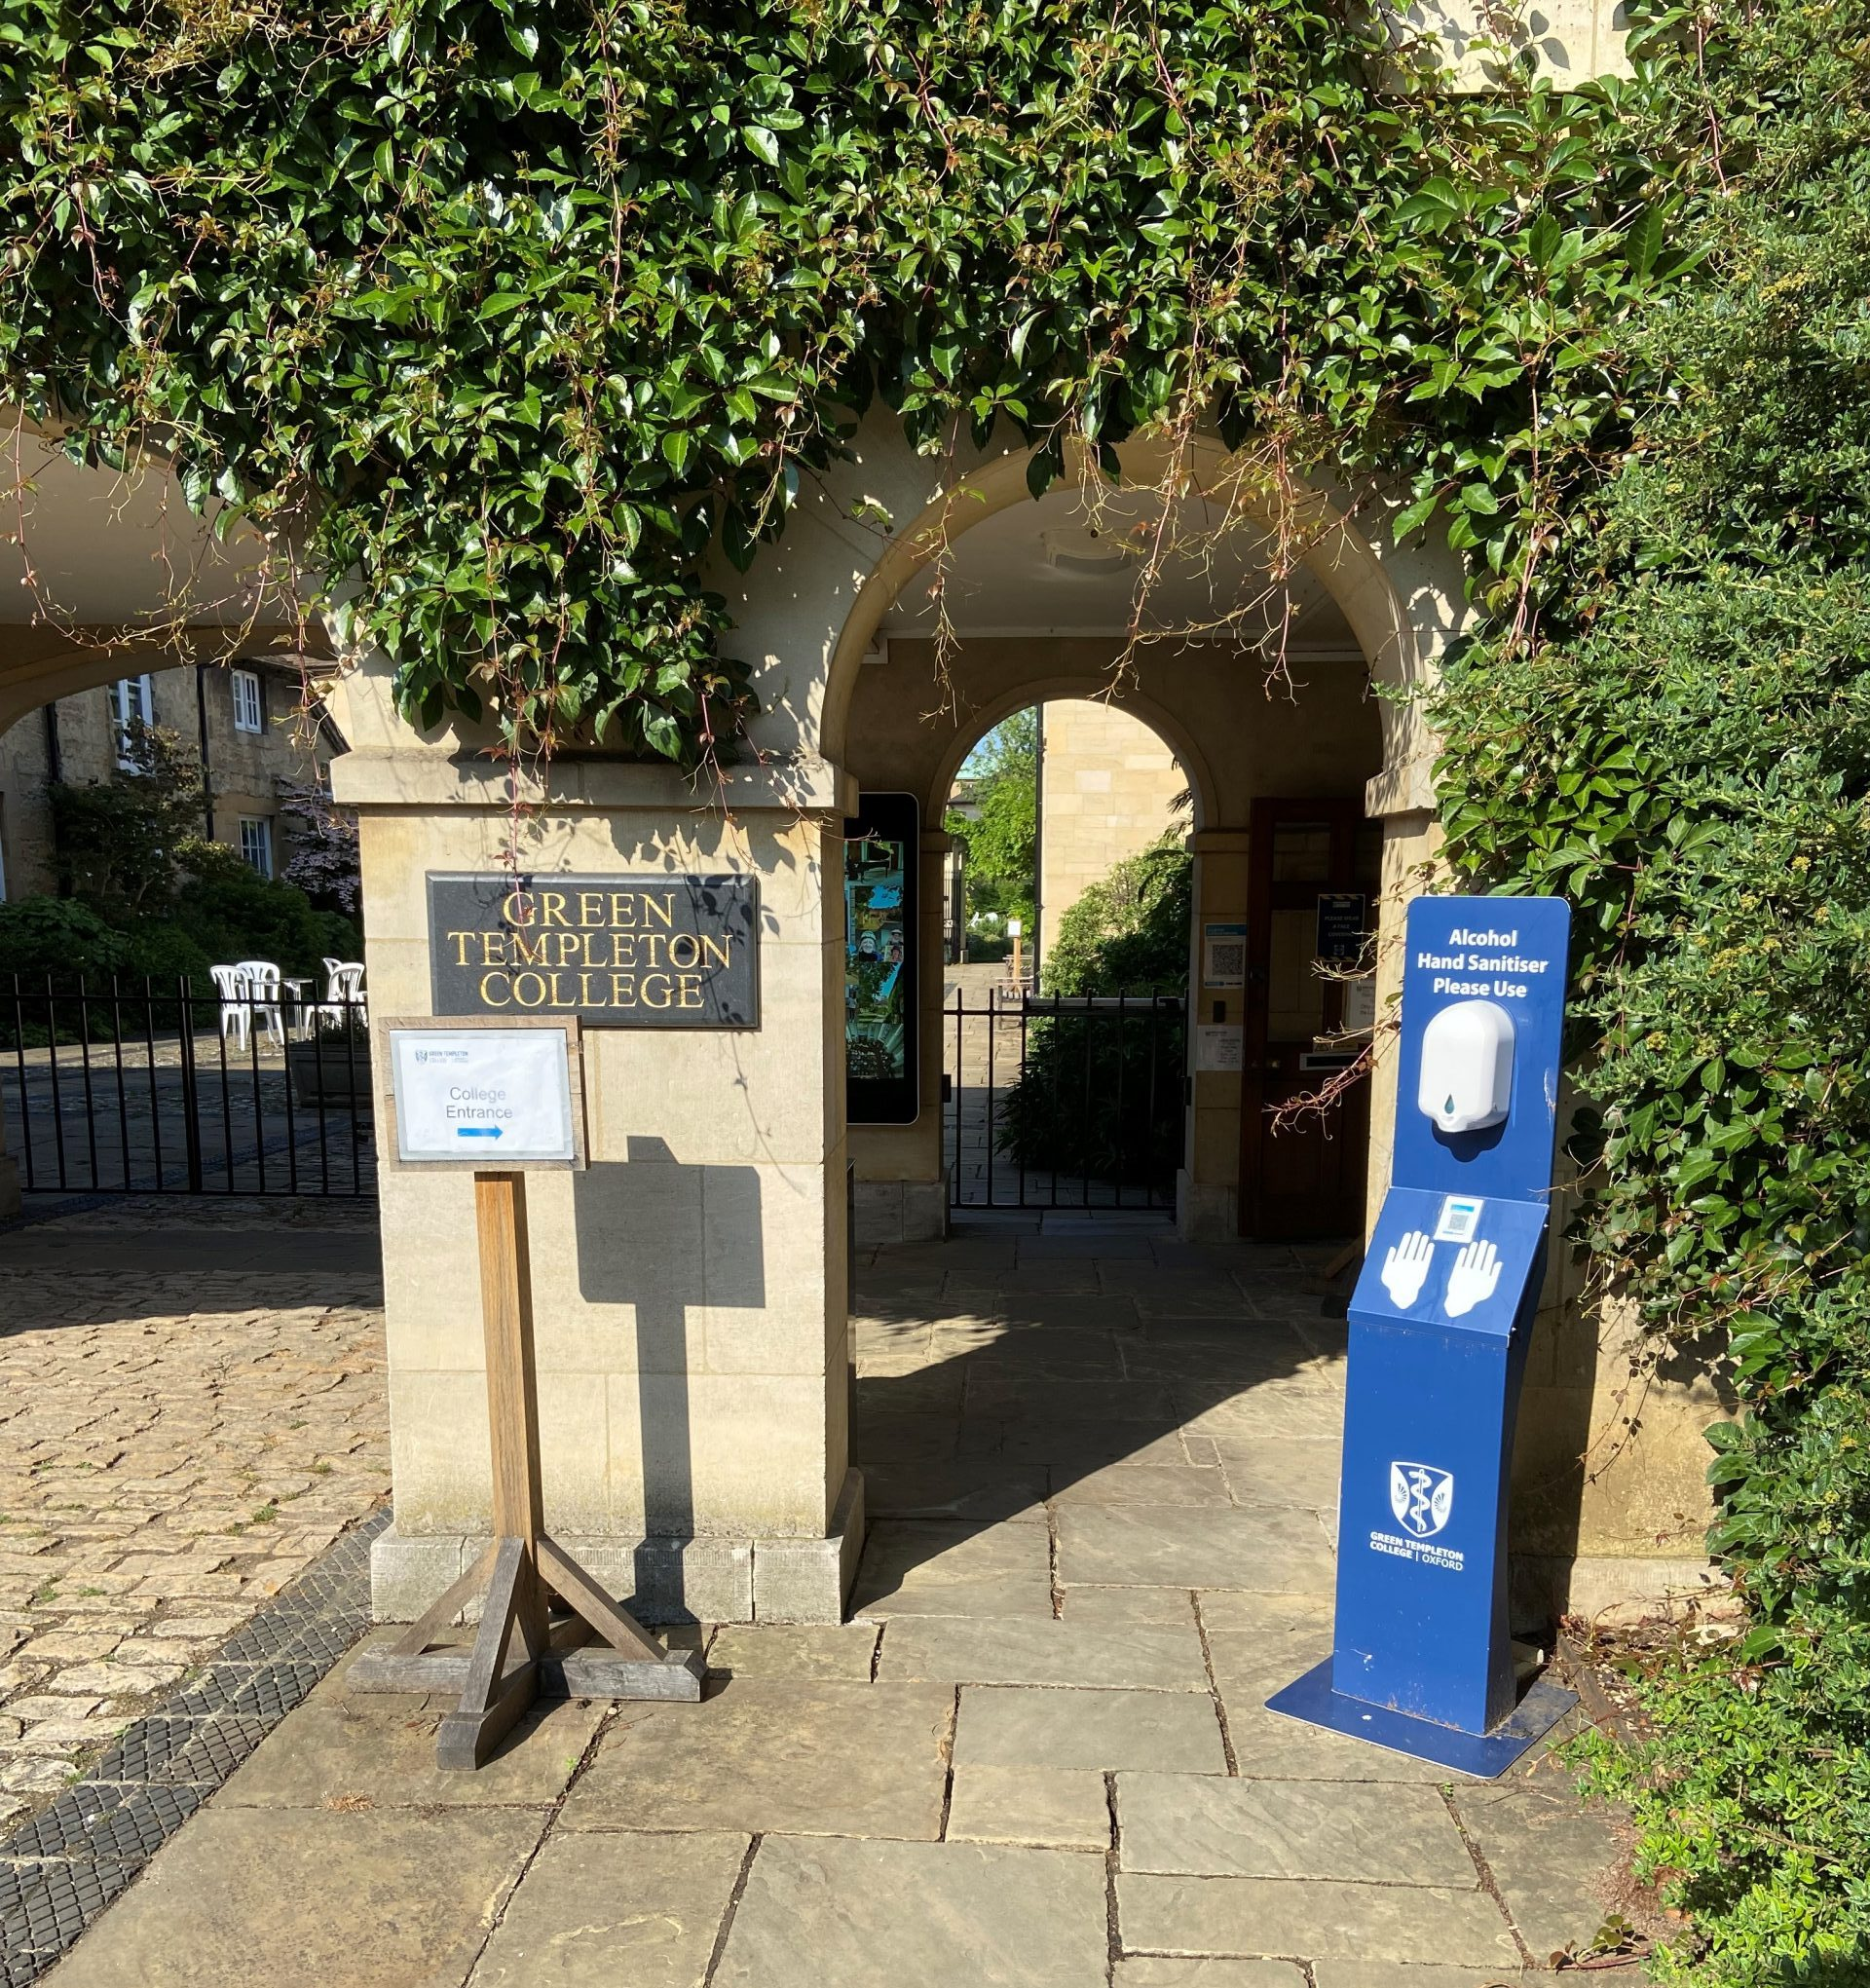 Hand sanitiser at the entrance to Green Templeton College